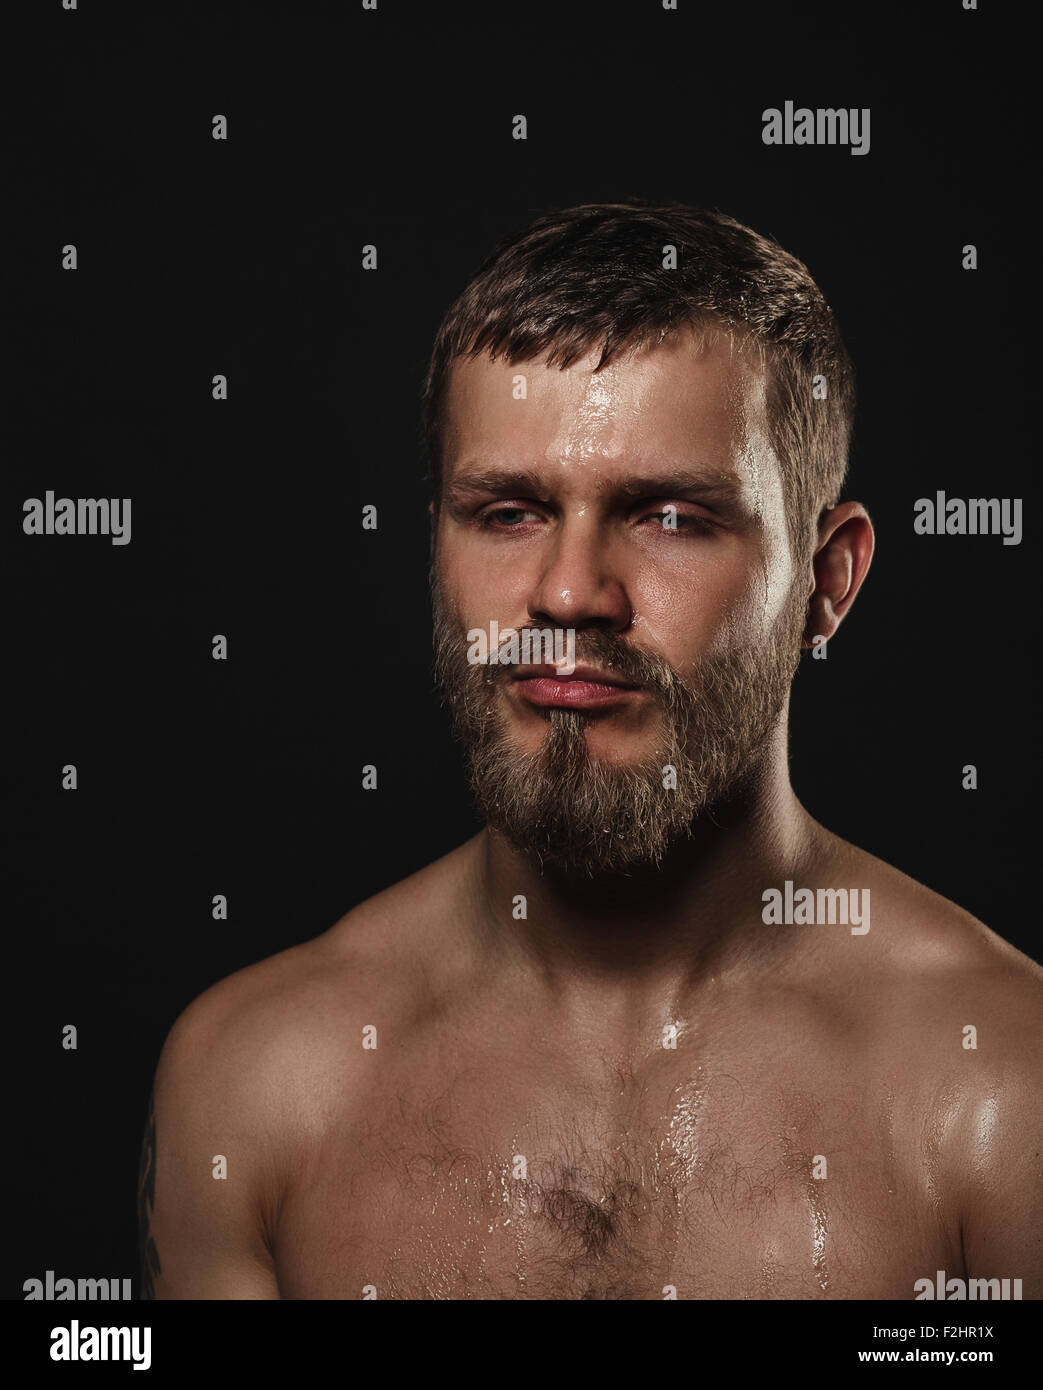 Athletic bearded boxer on a dark background - Stock Image